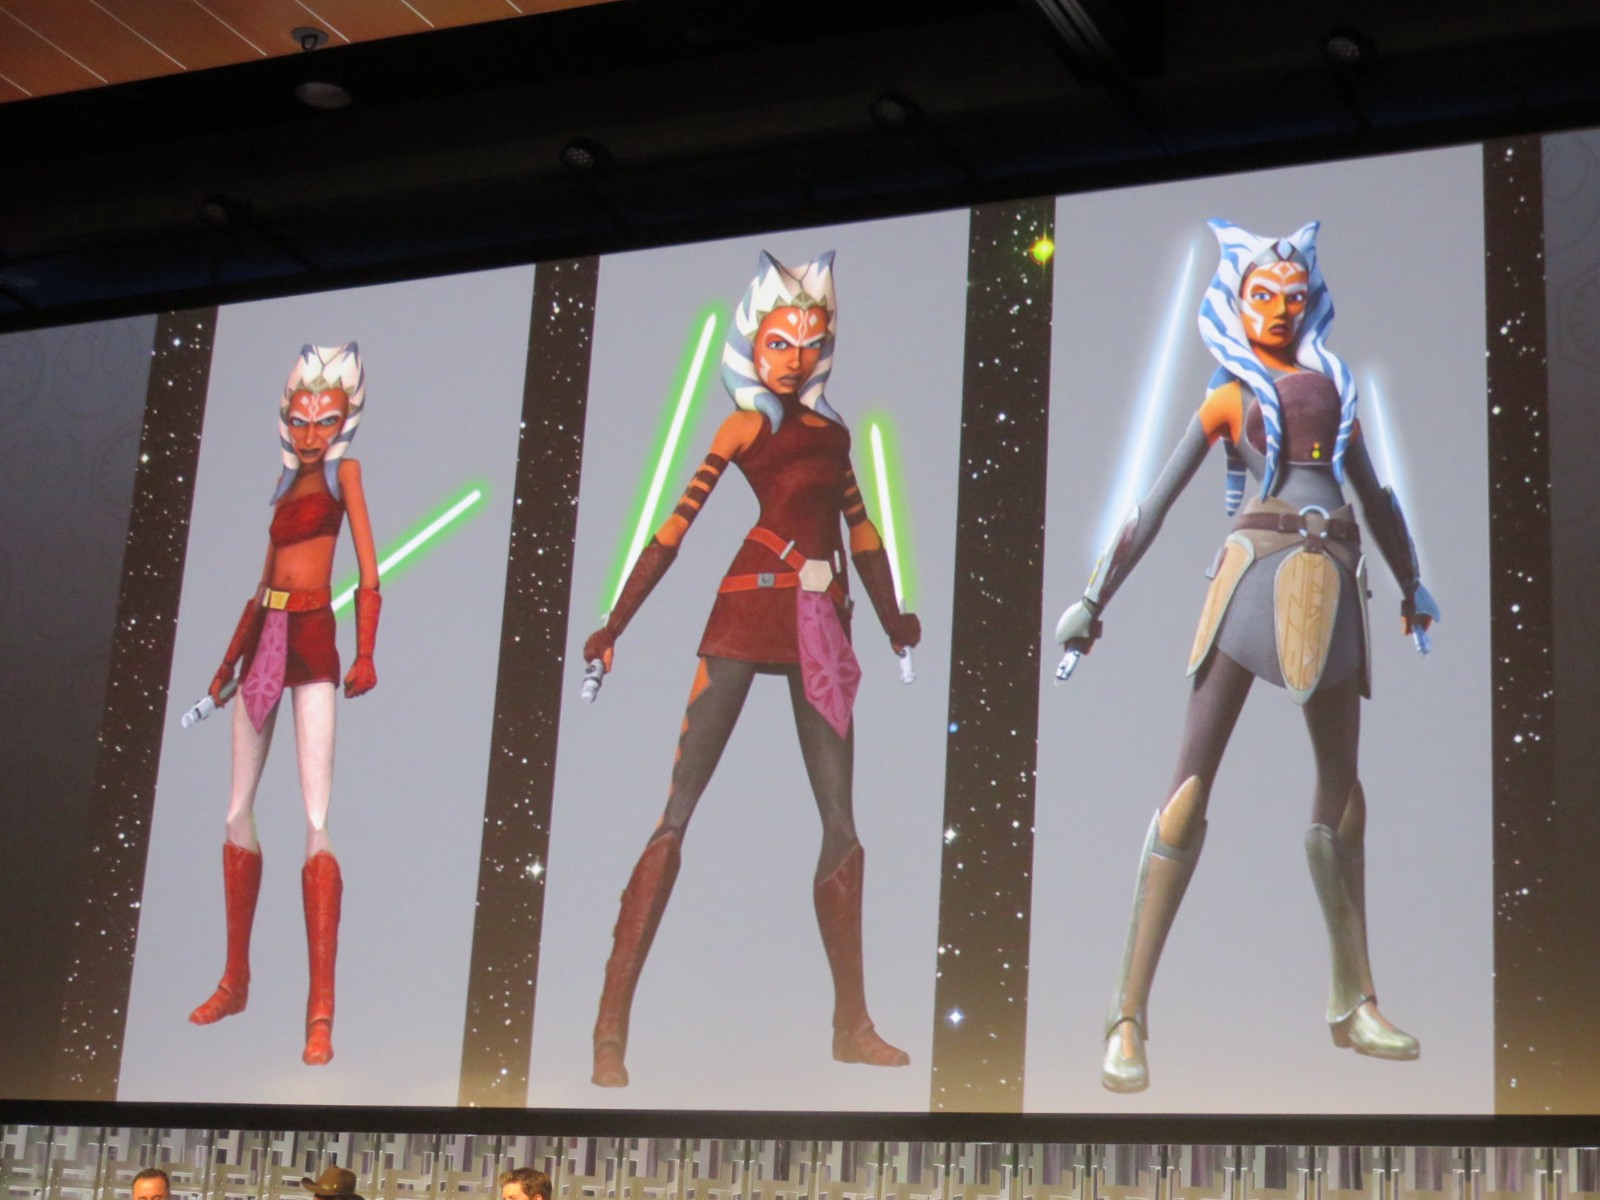 a013b57833cc9 The various character designs for Ahsoka Tano presented by Dave Filoni  during Star Wars Celebration Orlando 2016